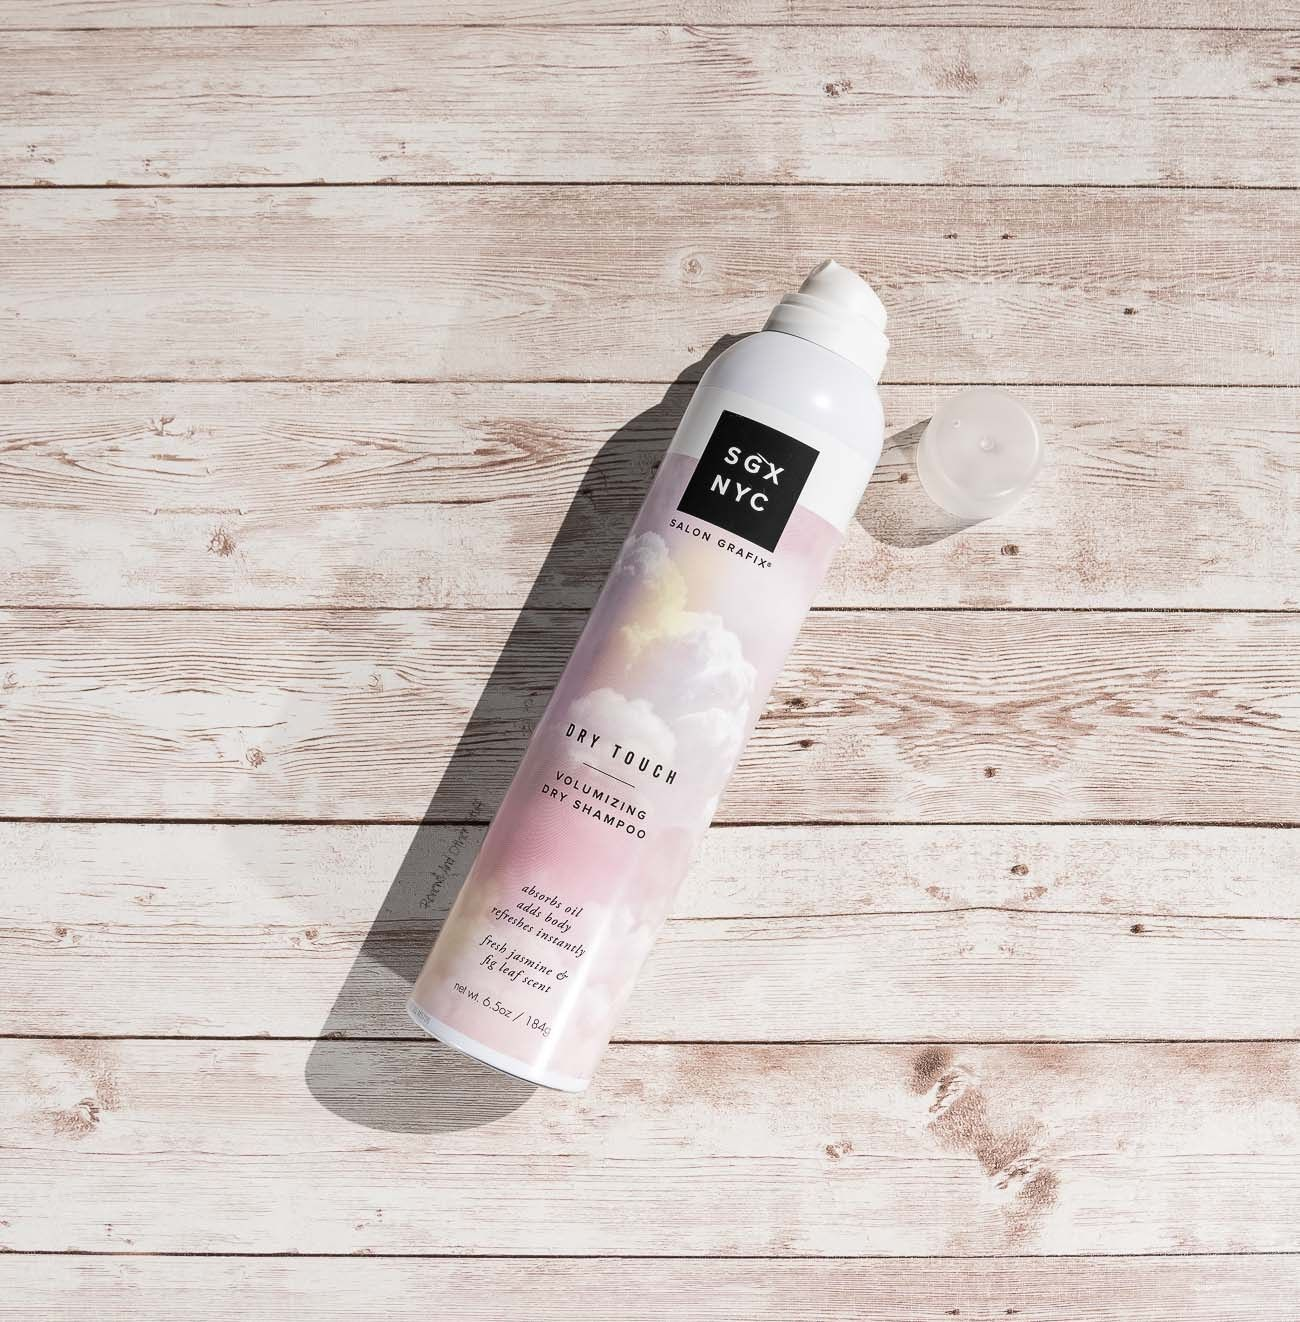 Favorite Drugstore Dry Shampoos Reviews And Other Stuff Dry Shampoo Dove Dry Shampoo Shampoo Reviews